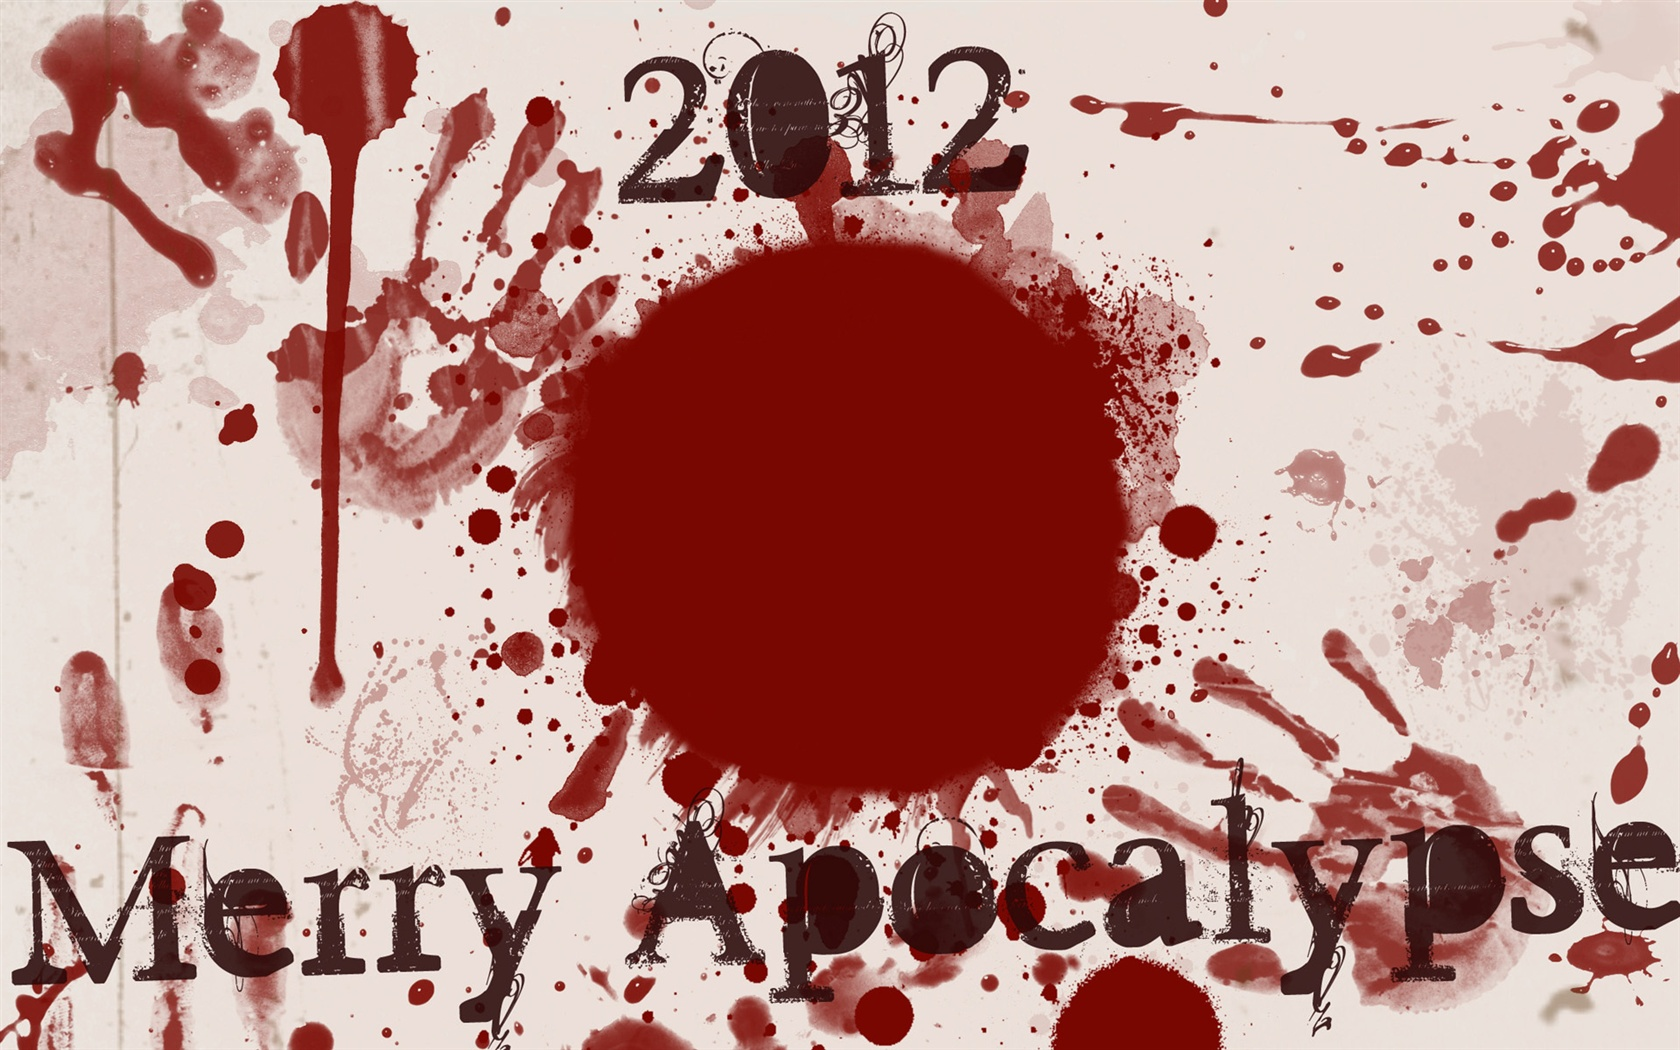 2012 Merry Apocalypse wallpaper - 1680x1050